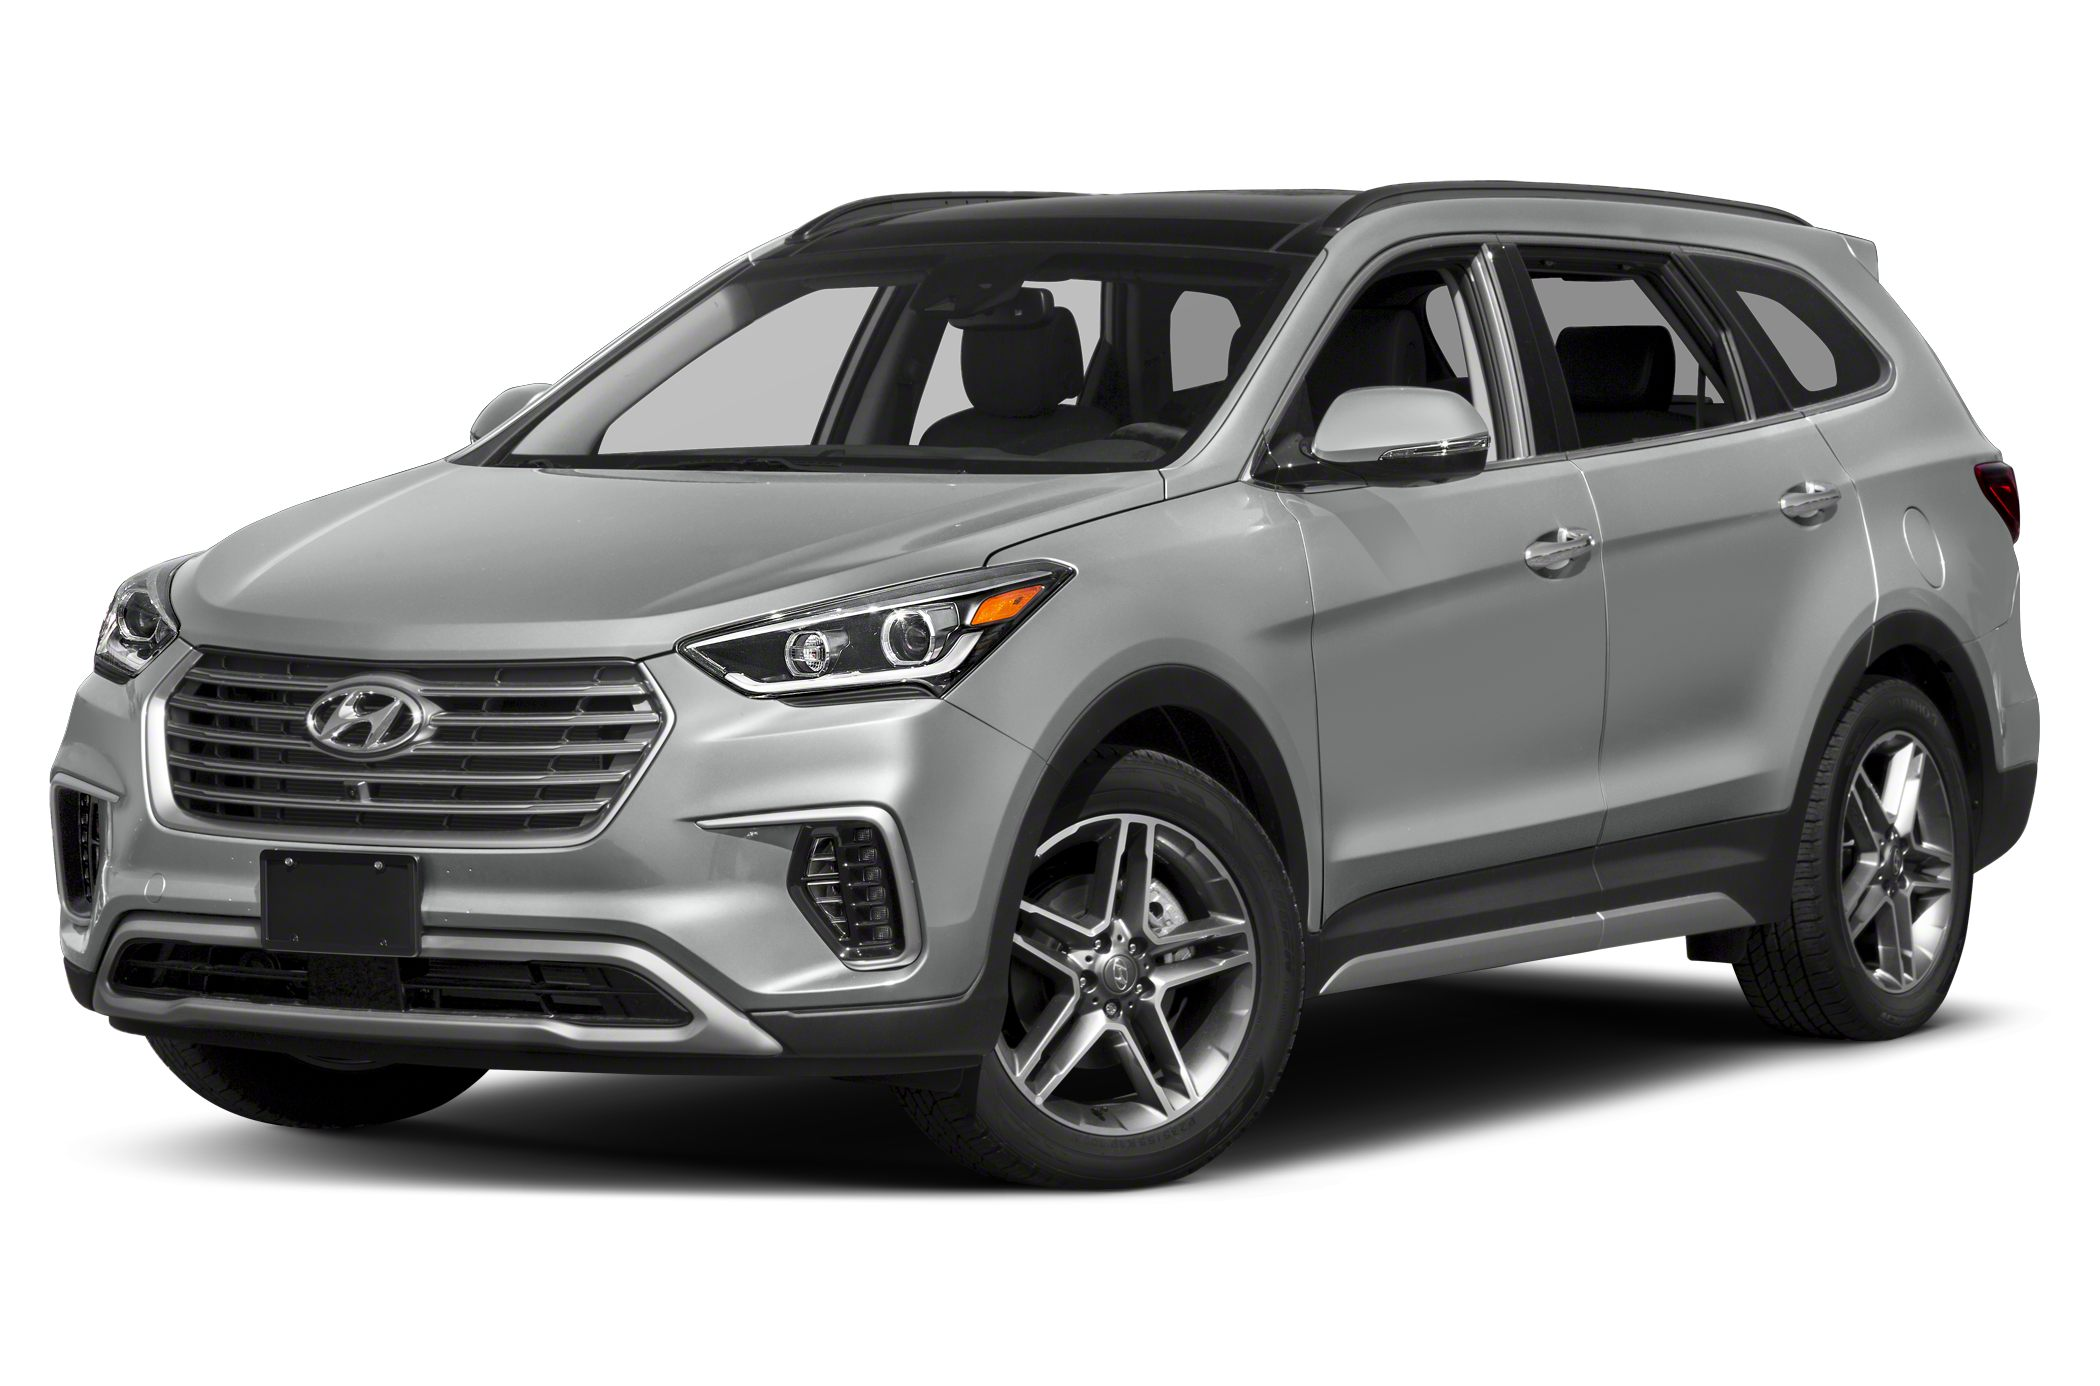 2017 hyundai santa fe limited ultimate 4dr all wheel drive pictures http mcrouter digimarc com imagebridge router mcrouter asp p source 101 p id 332763 p typ 4 p did 0 p cpy 2017 p att 5